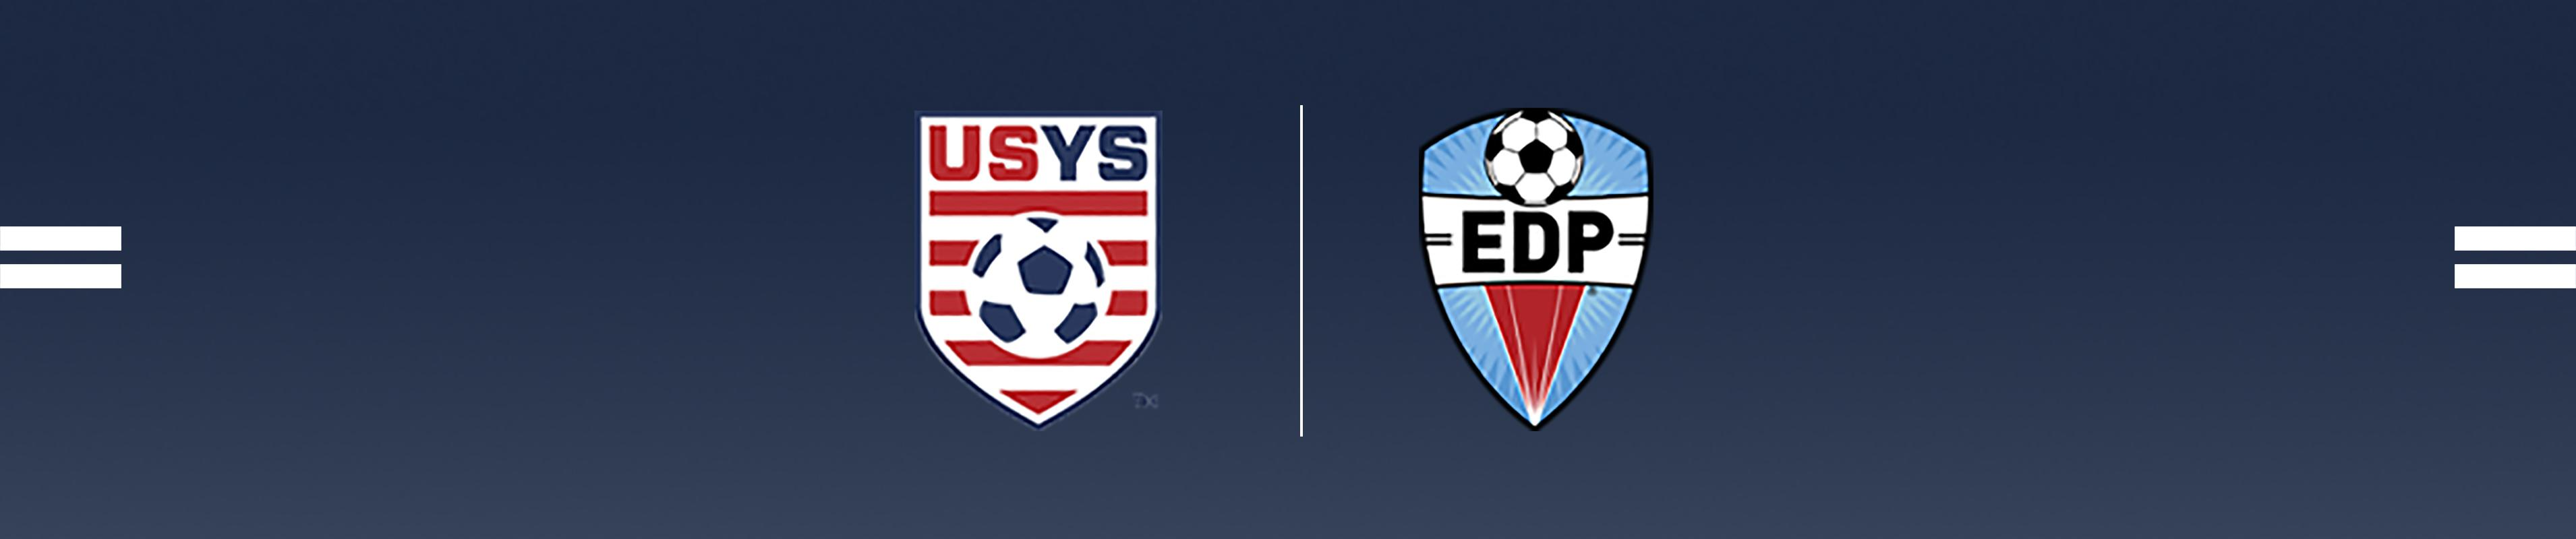 EDP Partners with US Youth Soccer